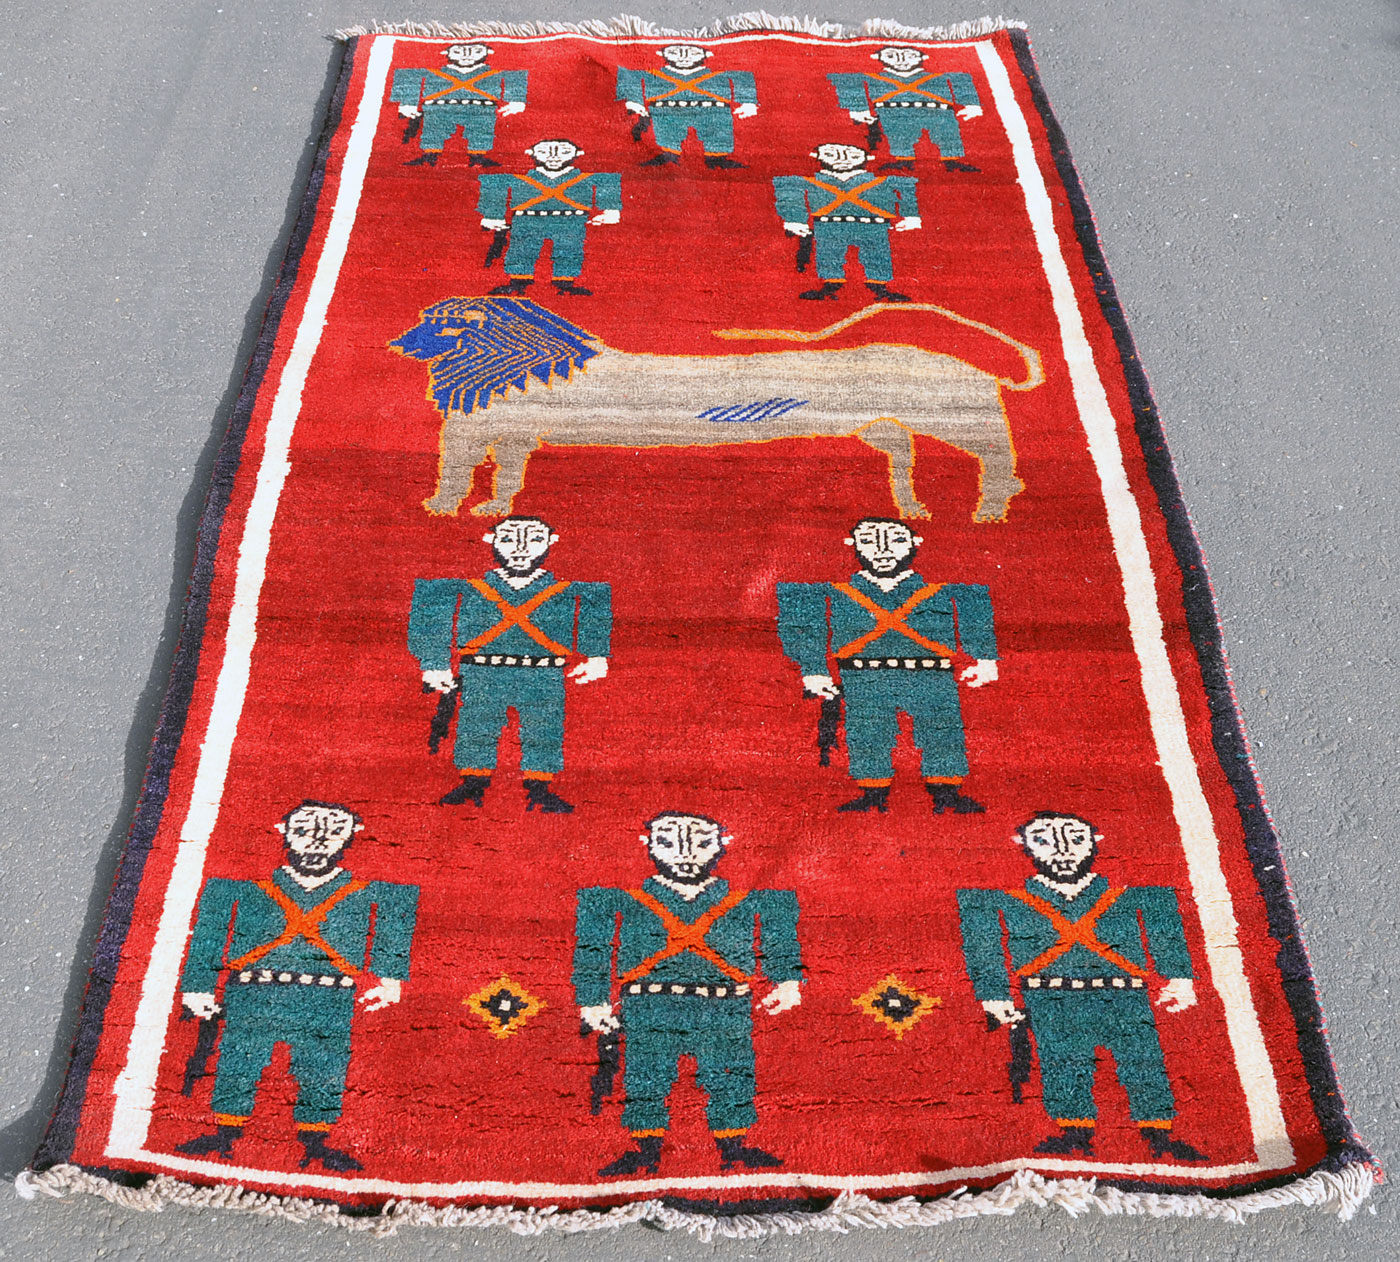 Qashqai Lion Rug with Soldiers